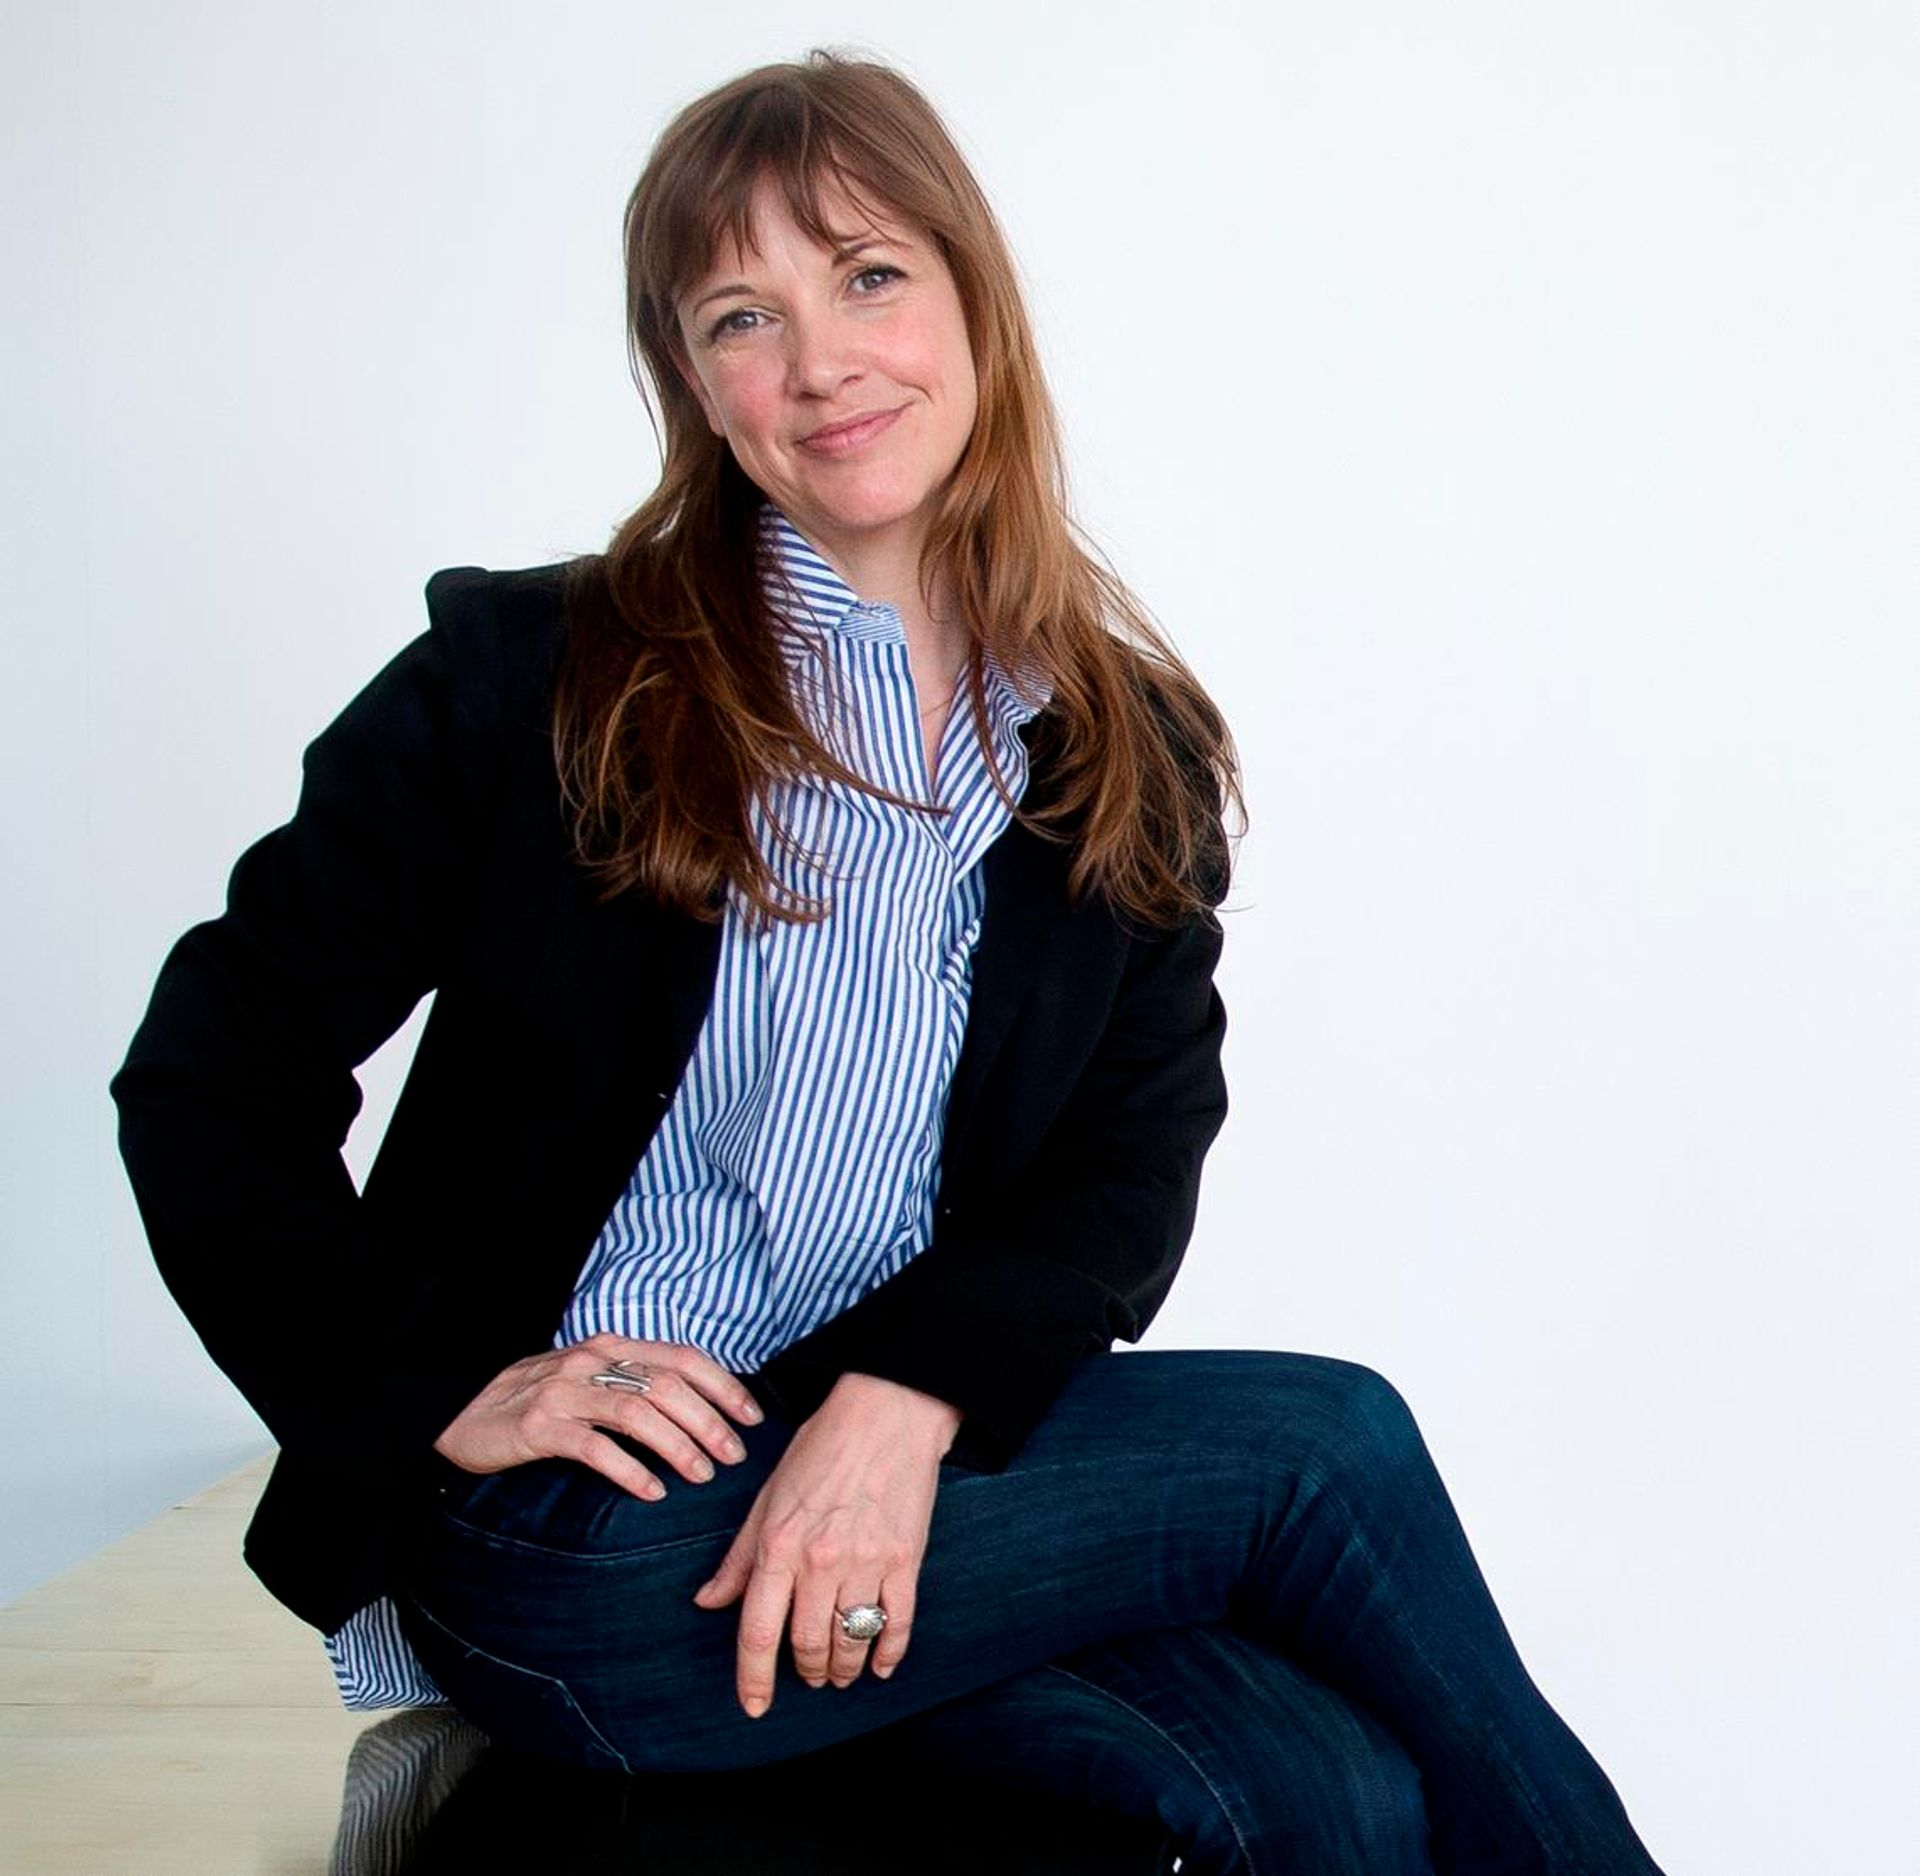 Kate Fowle takes over as director of MoMA PS1 on 3 September James Hill